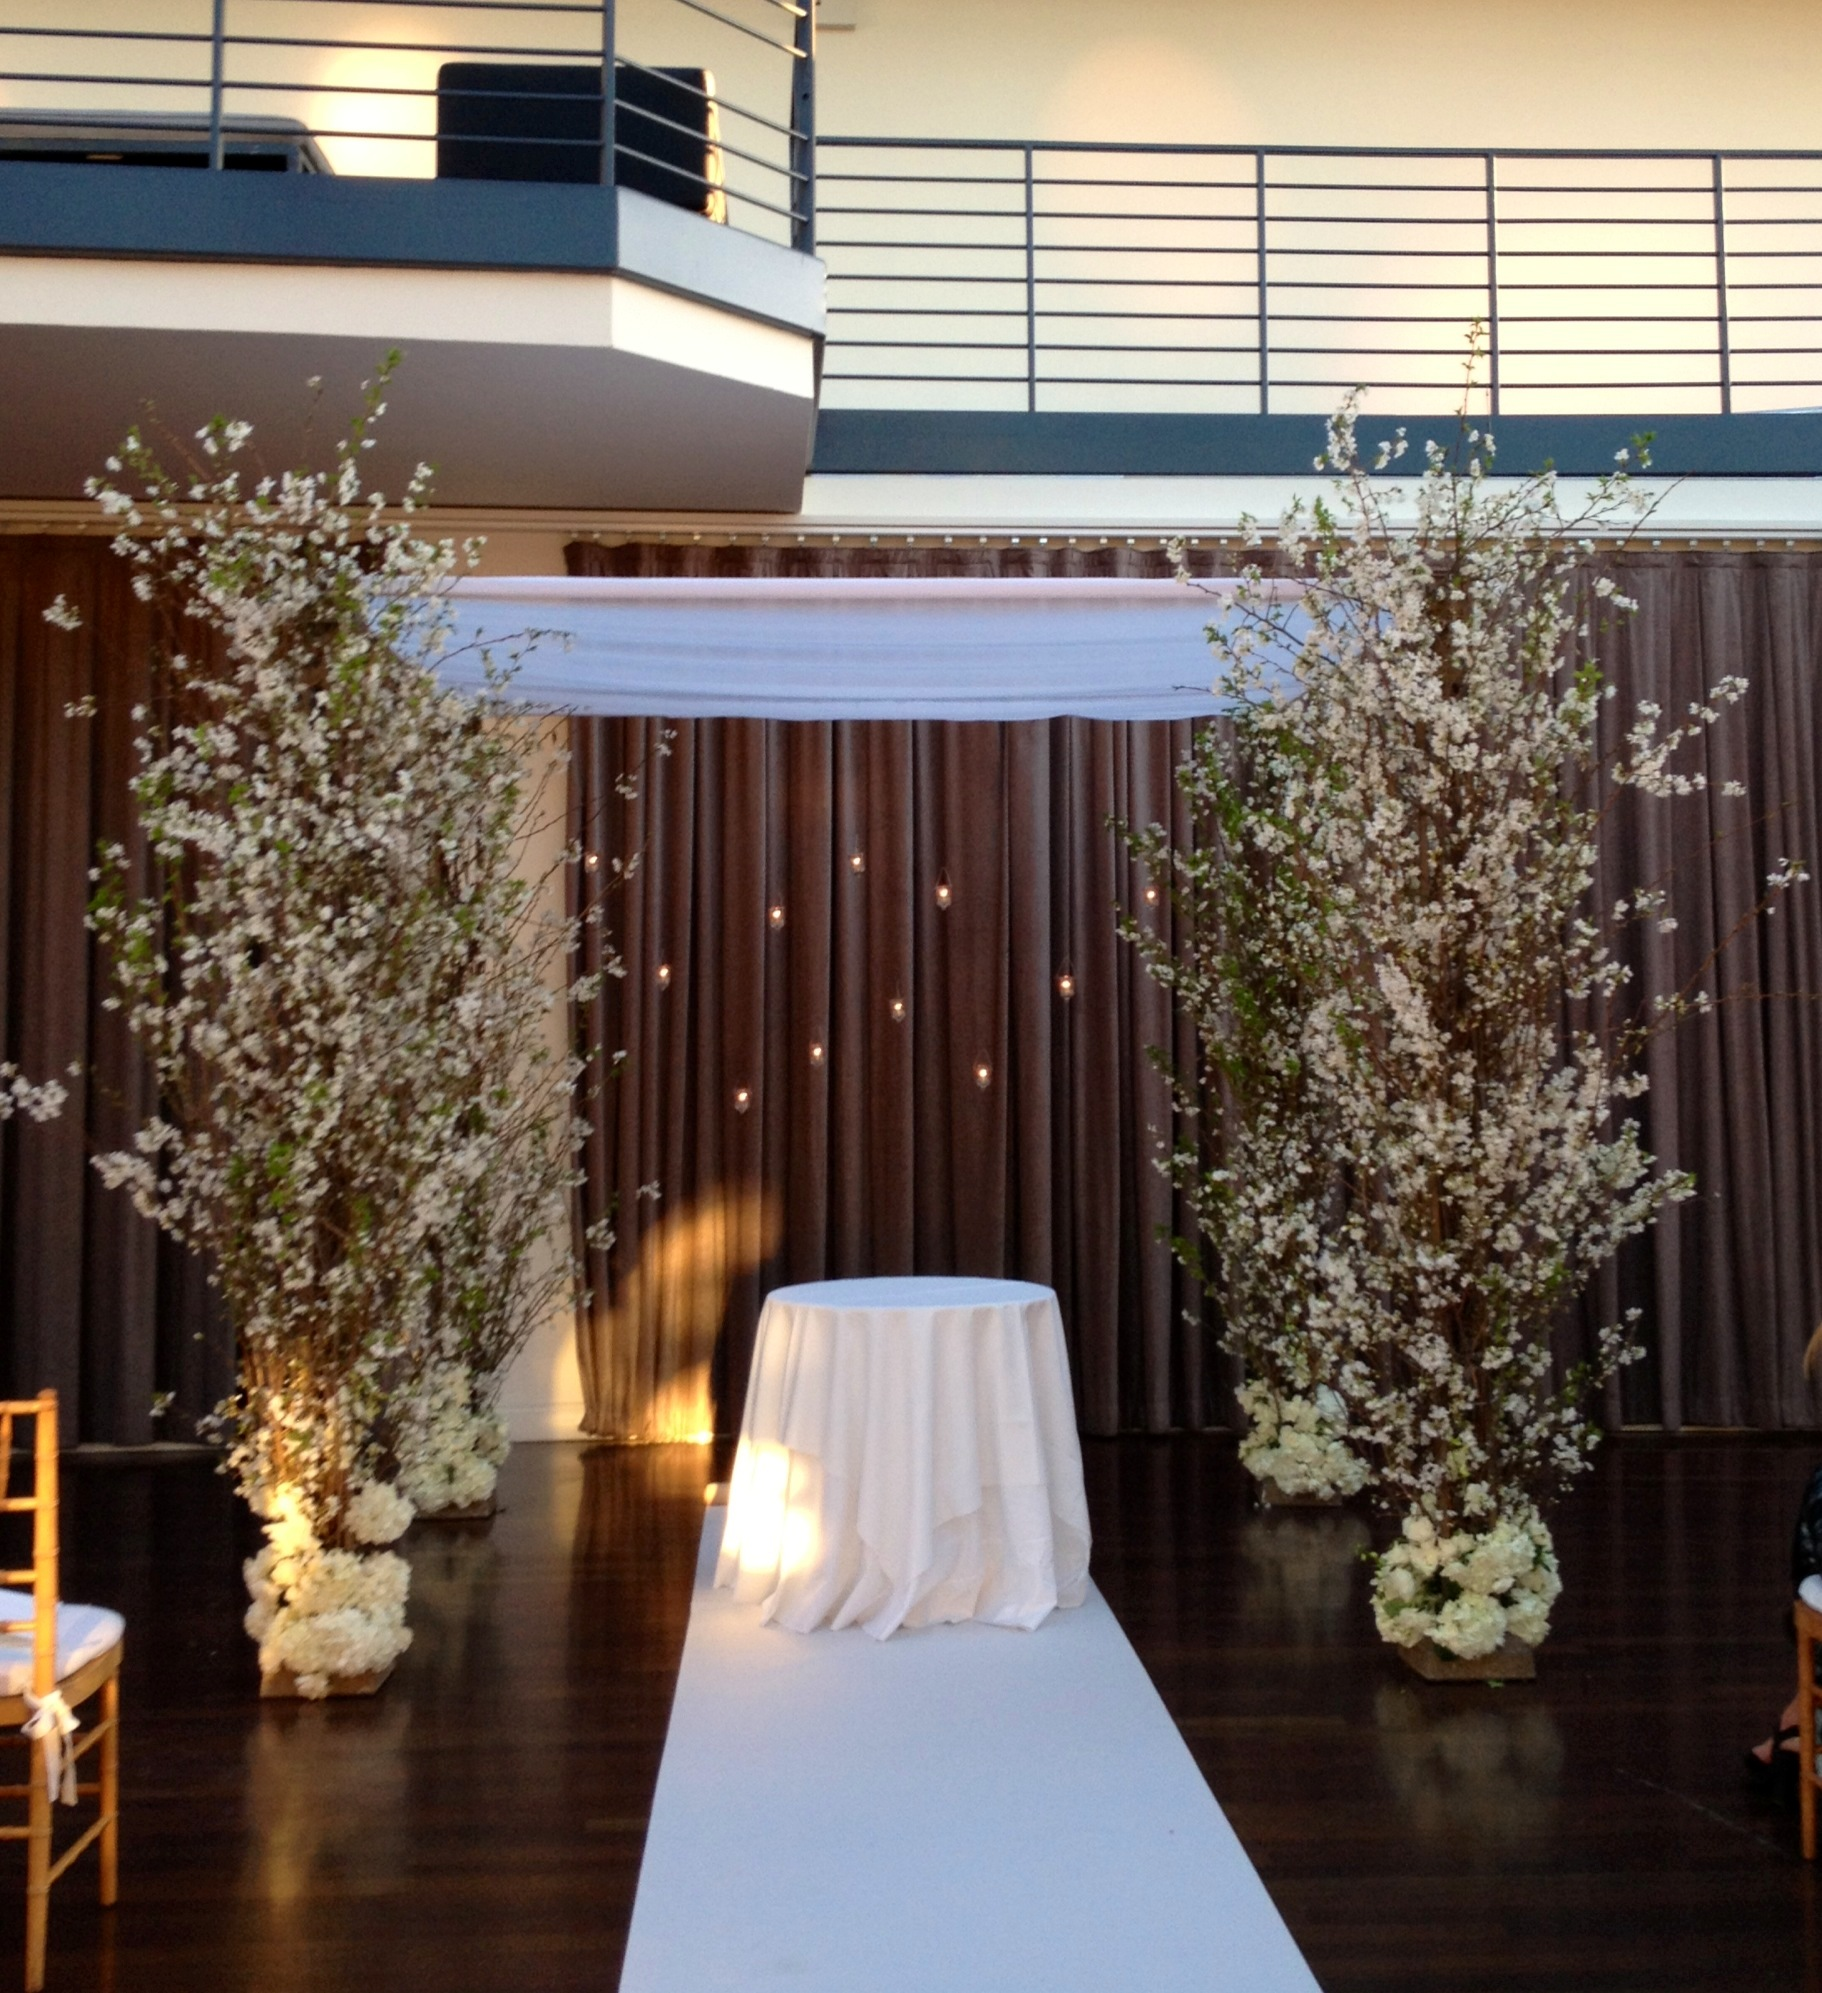 The Tree Chuppah Design by Tantawan Bloom